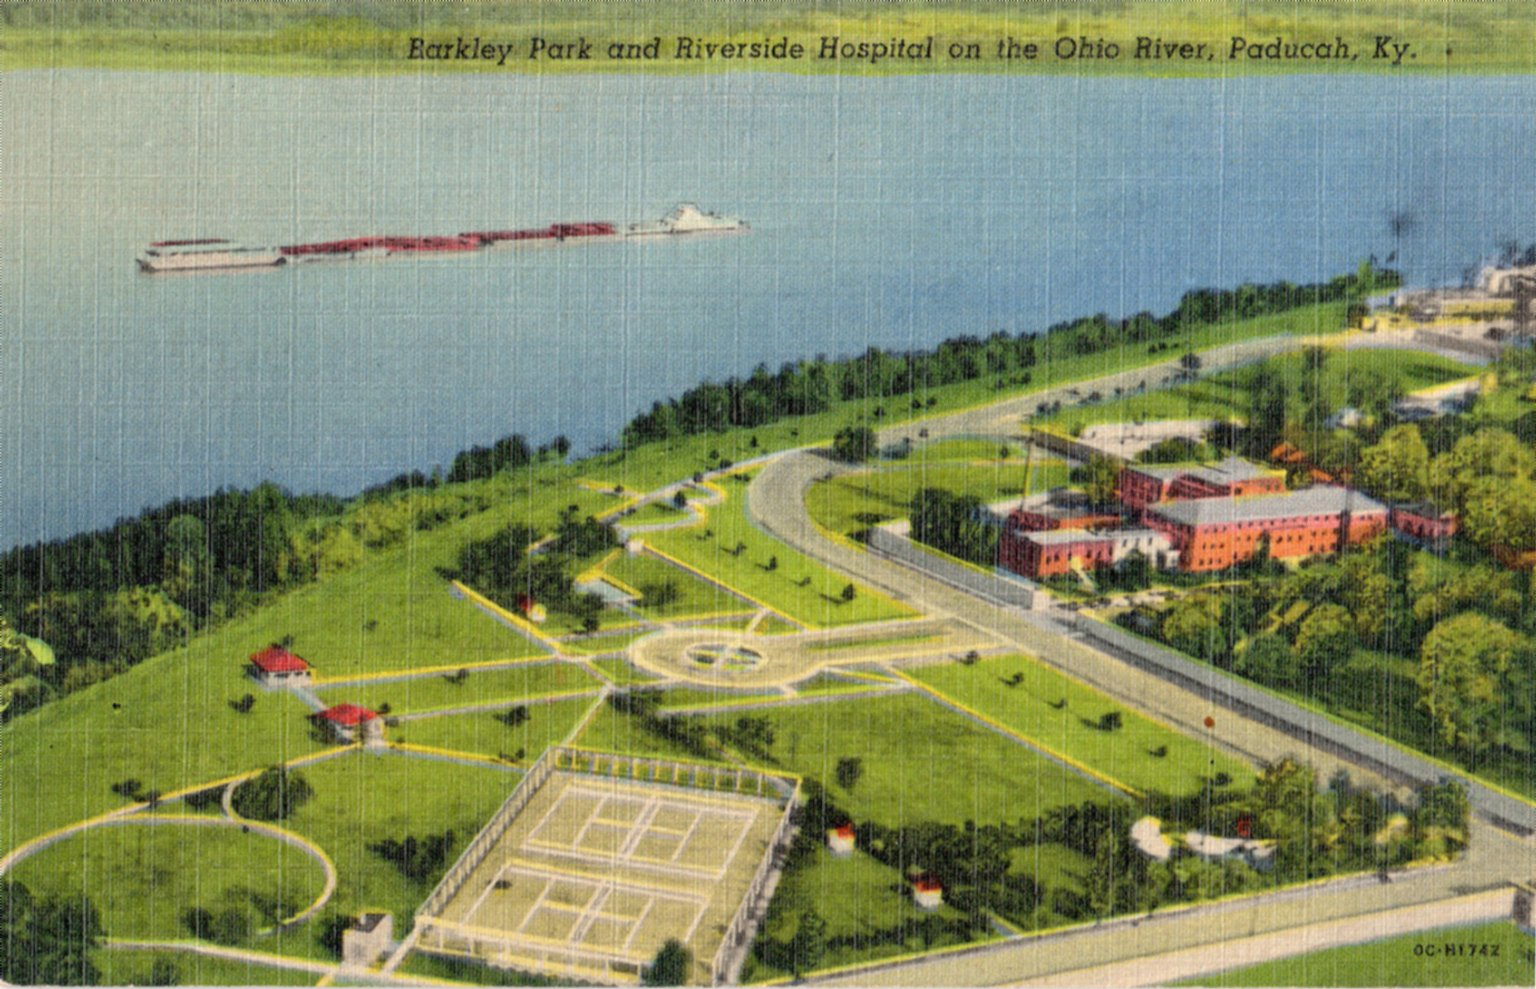 Barkley Park and Riverside Hospital on the Ohio River, Paducah, Kentucky